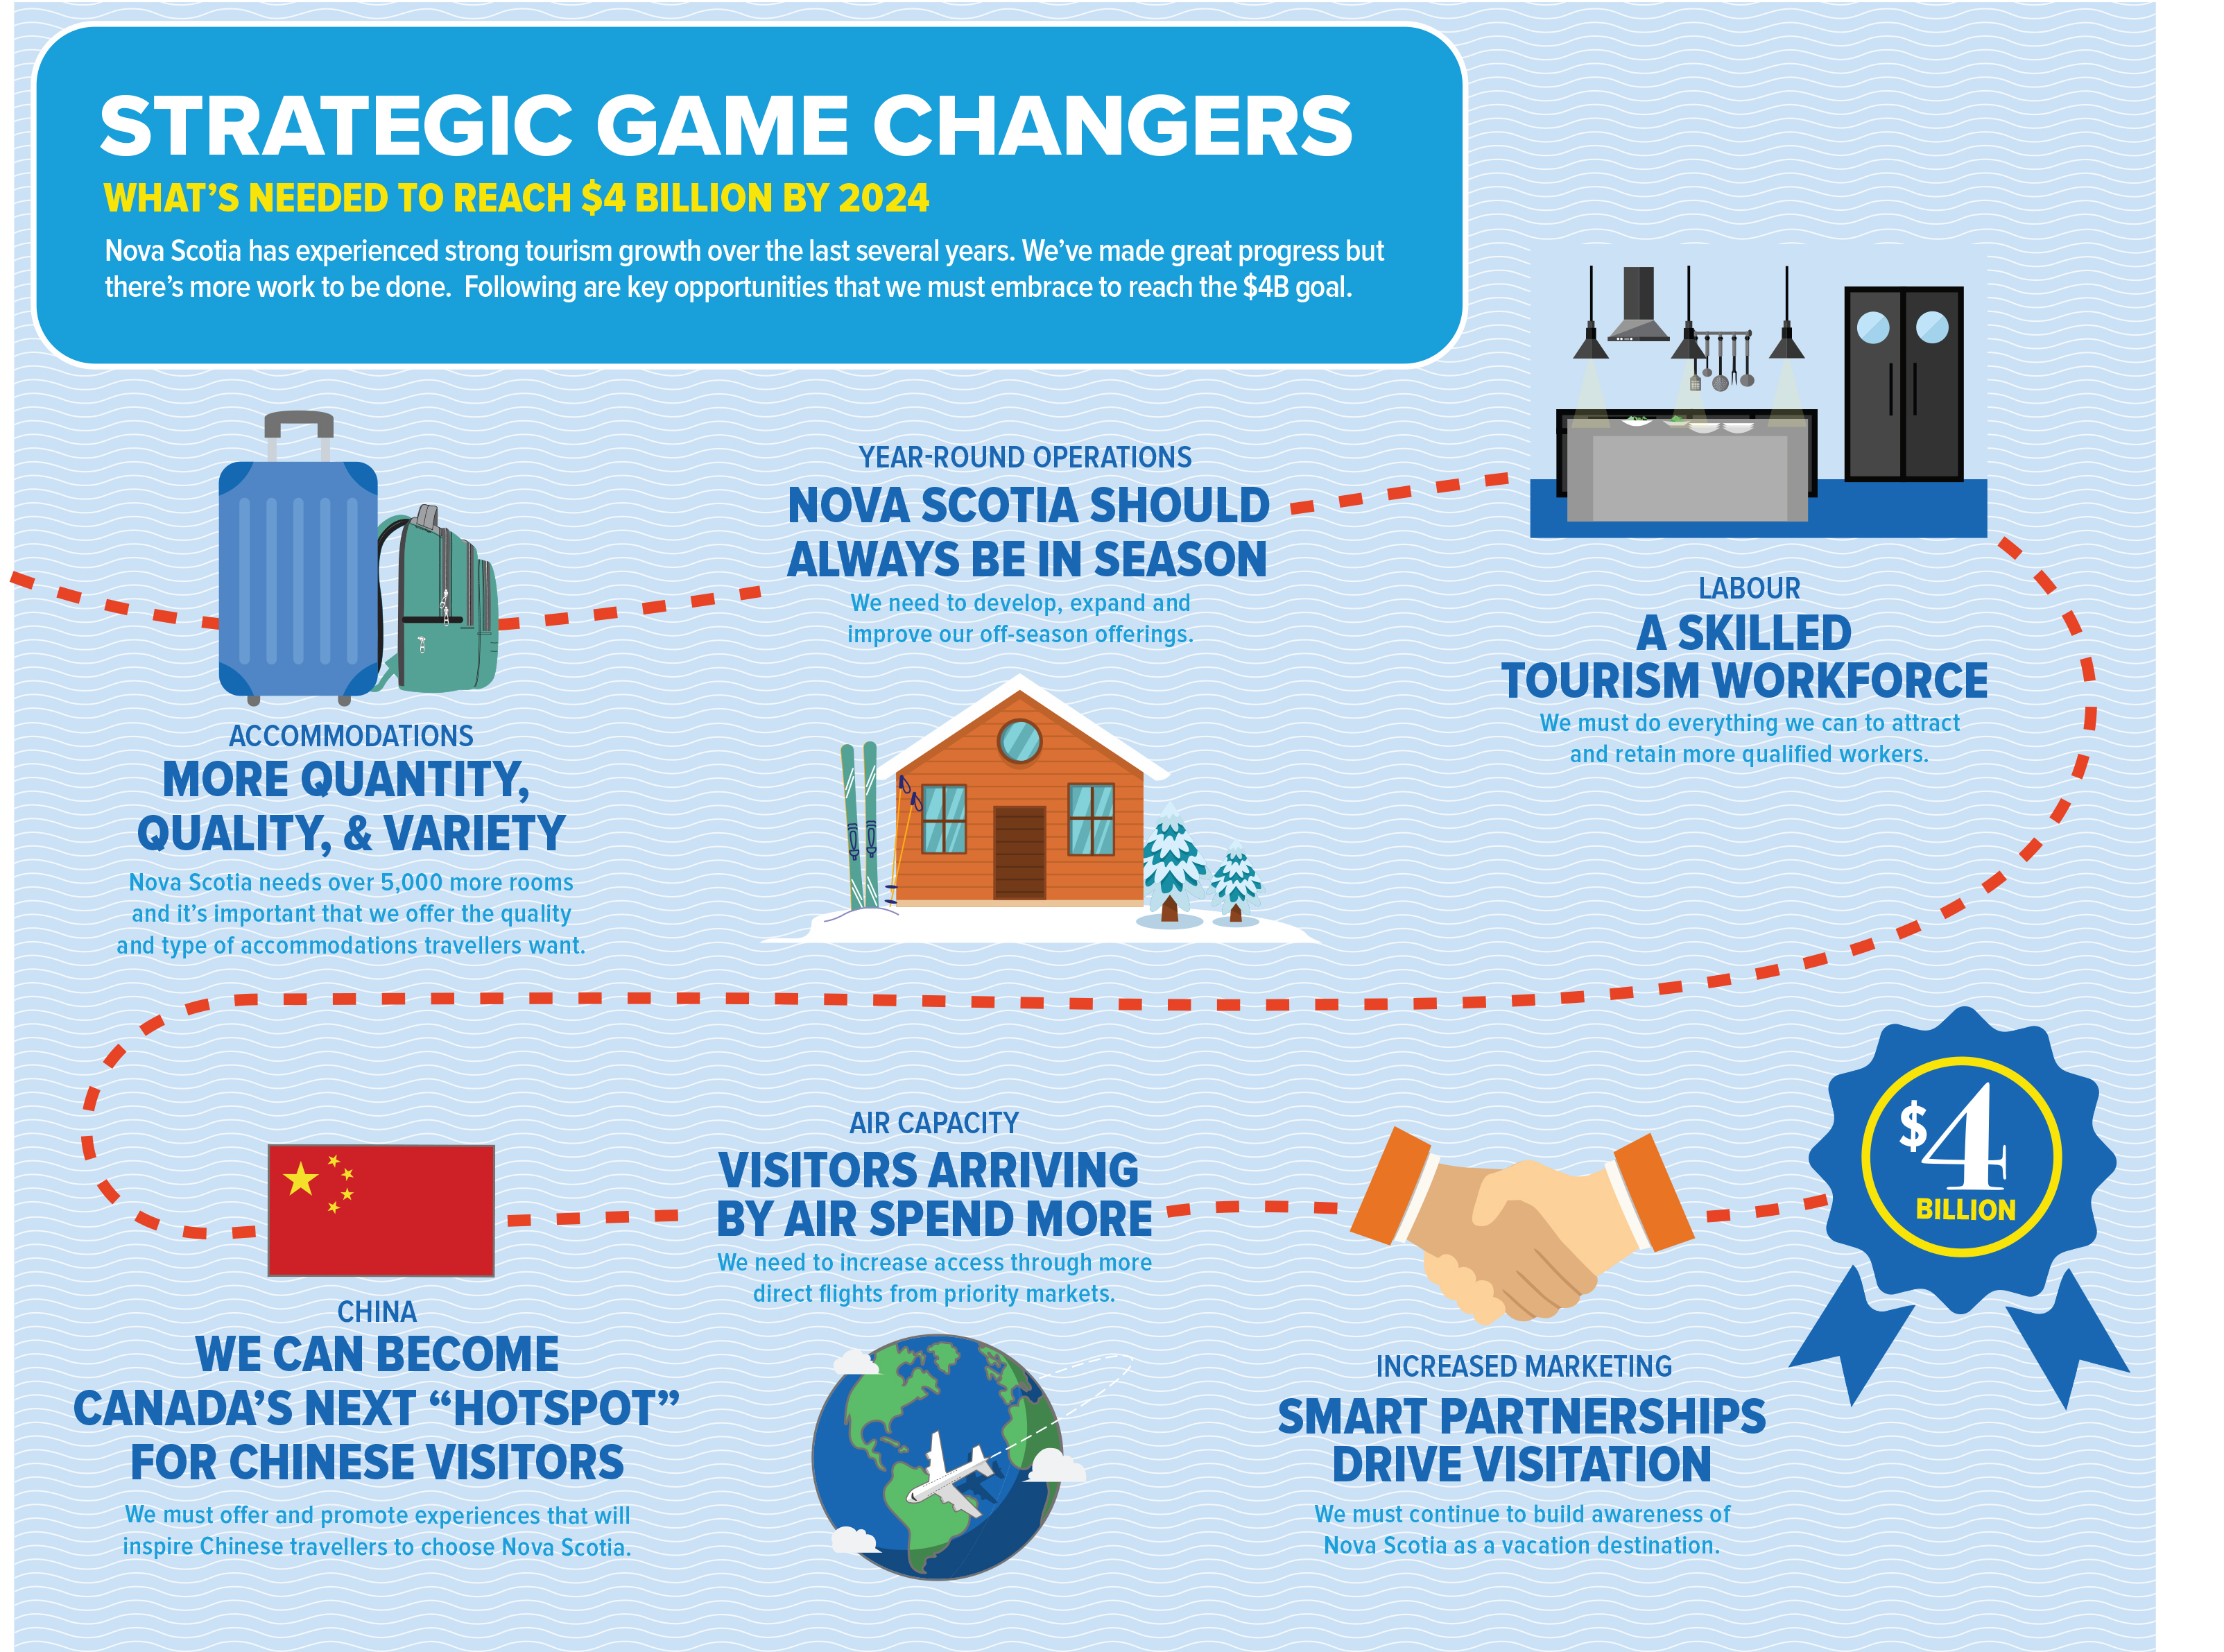 Strategic Game Changer Opportunities Infographic